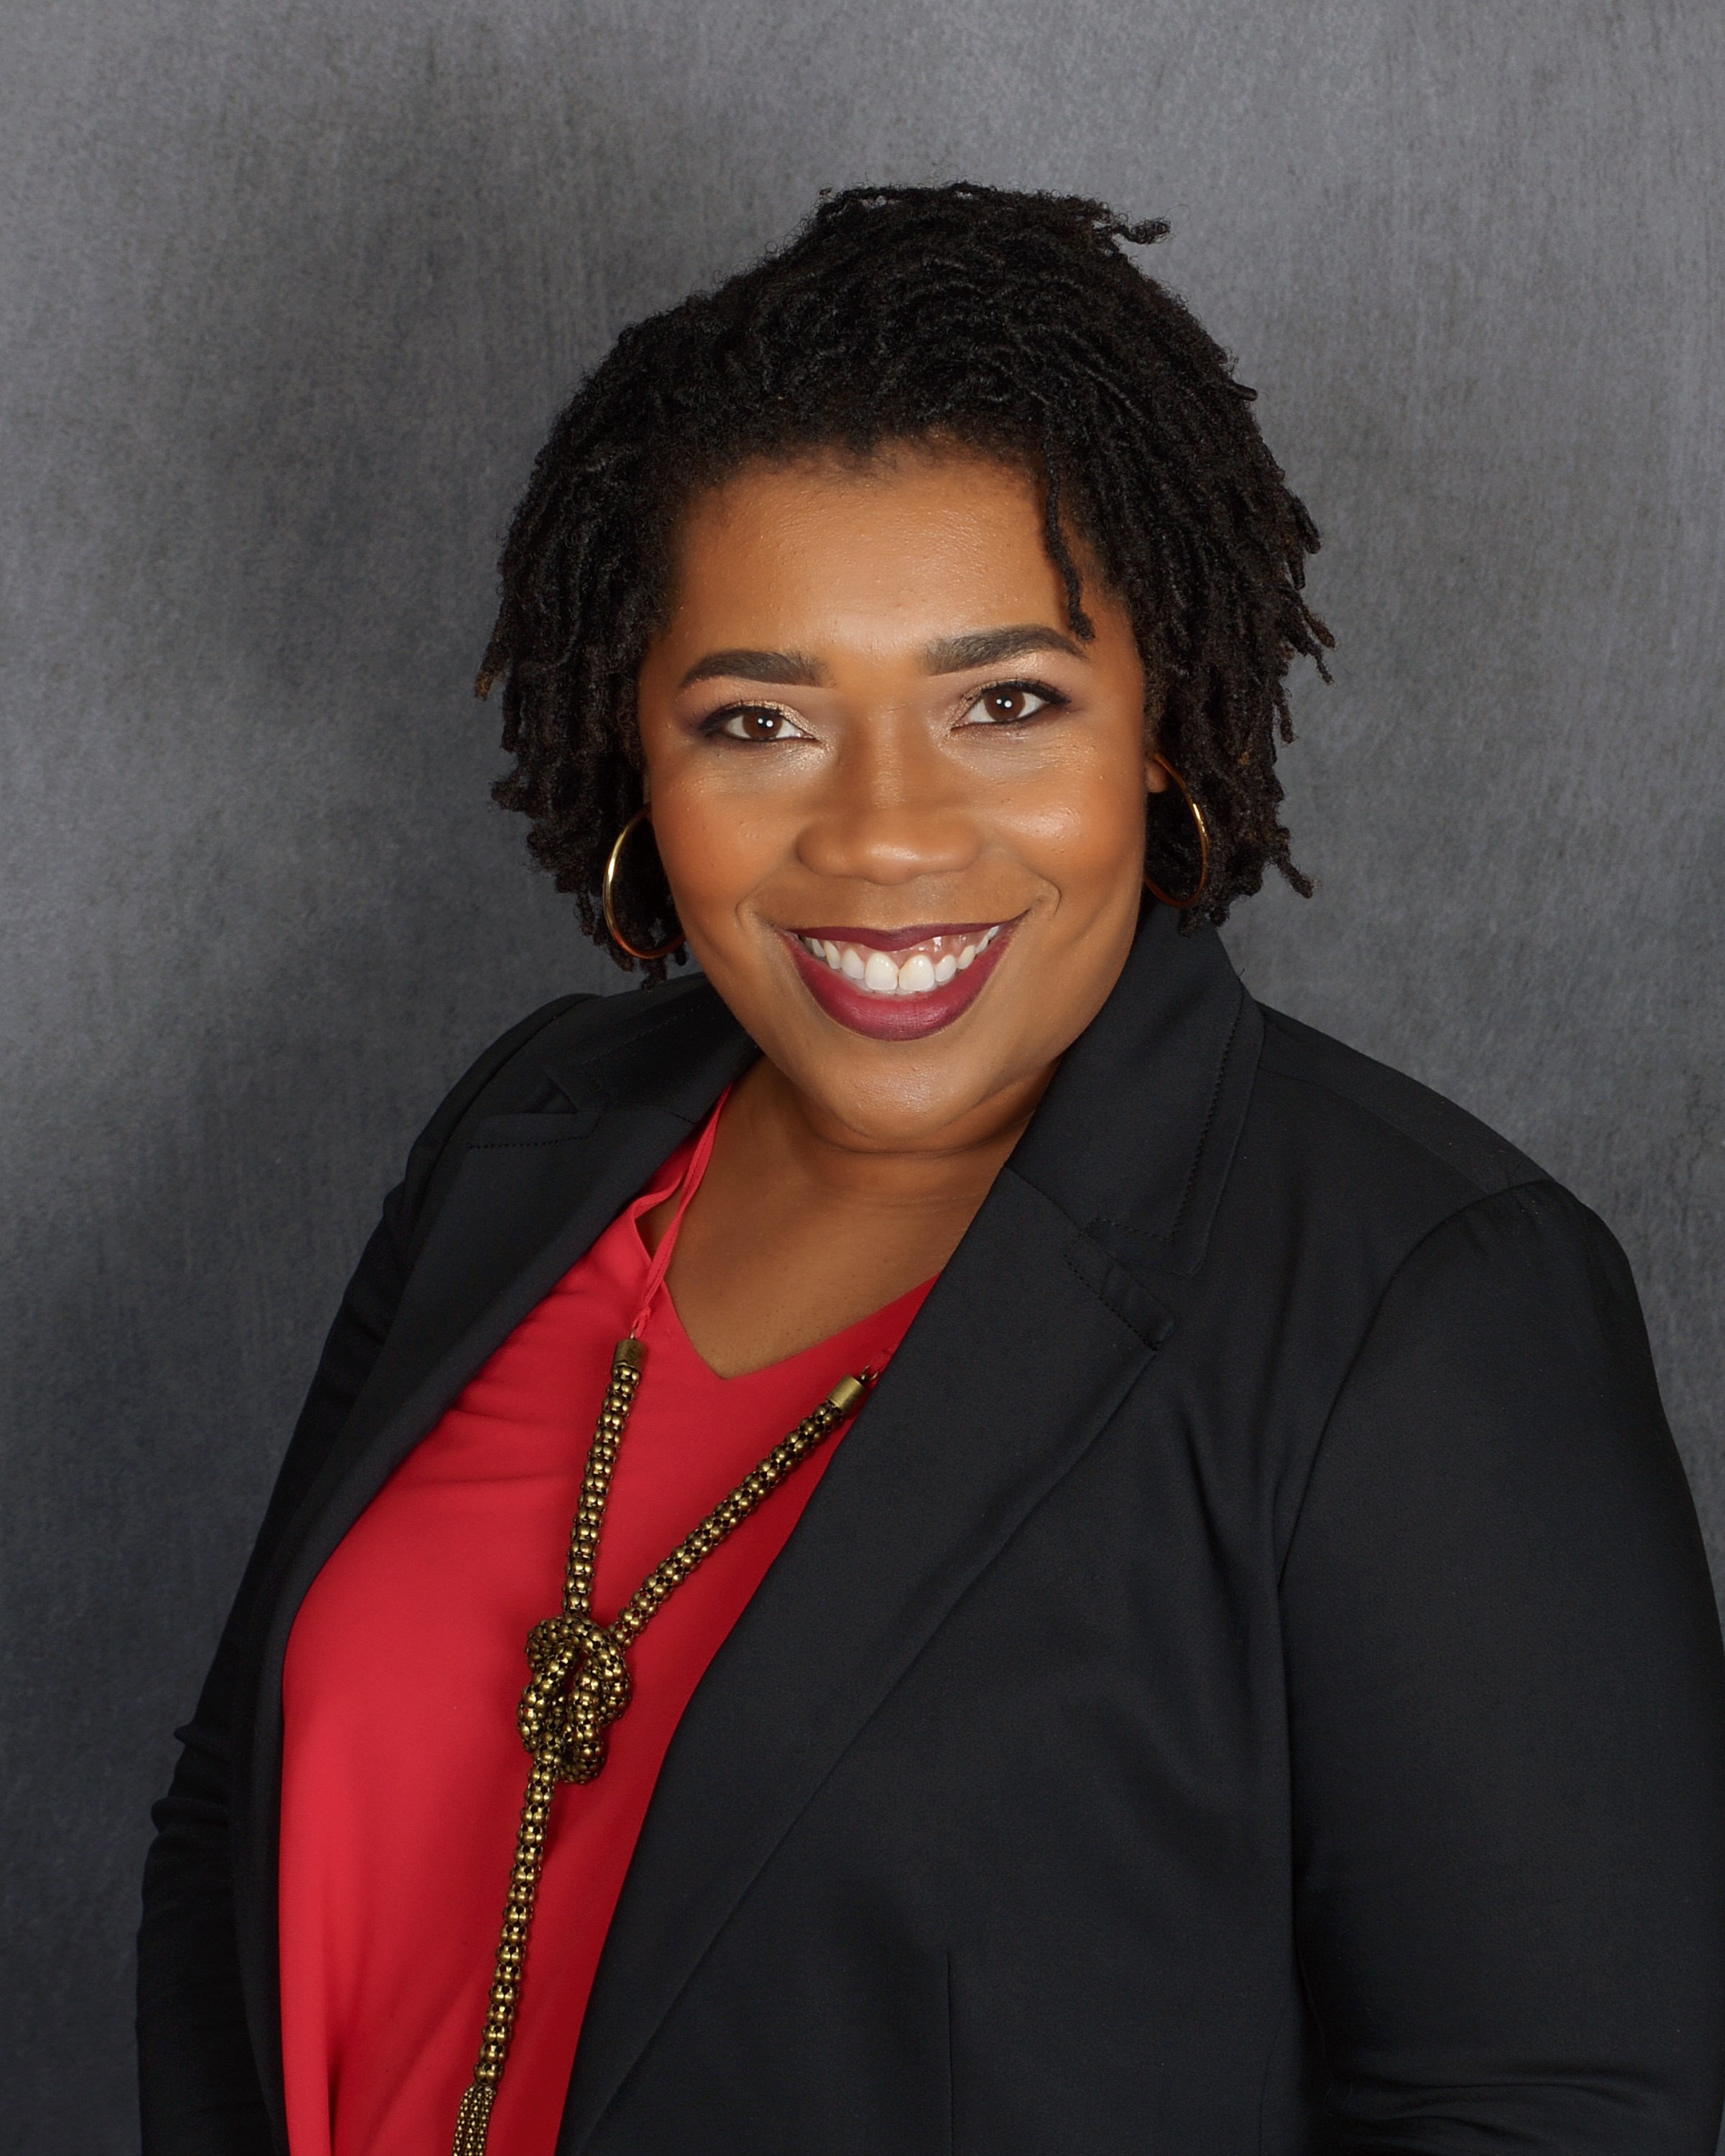 Dr. Kelly Brown - BS: Applied Learning and Development / University of Texas at AustinMEd: Educational Administration / University of Houston VictoriaEdD: Educational Administration and Supervision / Texas Southern UniversityDr. Brown started her career in education at a child care center in Austin, Texas. She has worked in the field of education for over 20 years as a teacher, administrator, consultant and trainer. She has been training child care administrators and teachers throughout the state of Texas for past 10 years with the Texas Teacher Academy. She speaks at conferences centered on education across the country. She currently serves as Master Teacher for the Texas Teacher Academy. She believes in the positive growth potential of every child, every child care employee and every early childhood center. Her passion and her goal is to provide resources and support for child care professionals that seek personal and professional growth for themselves and their center.